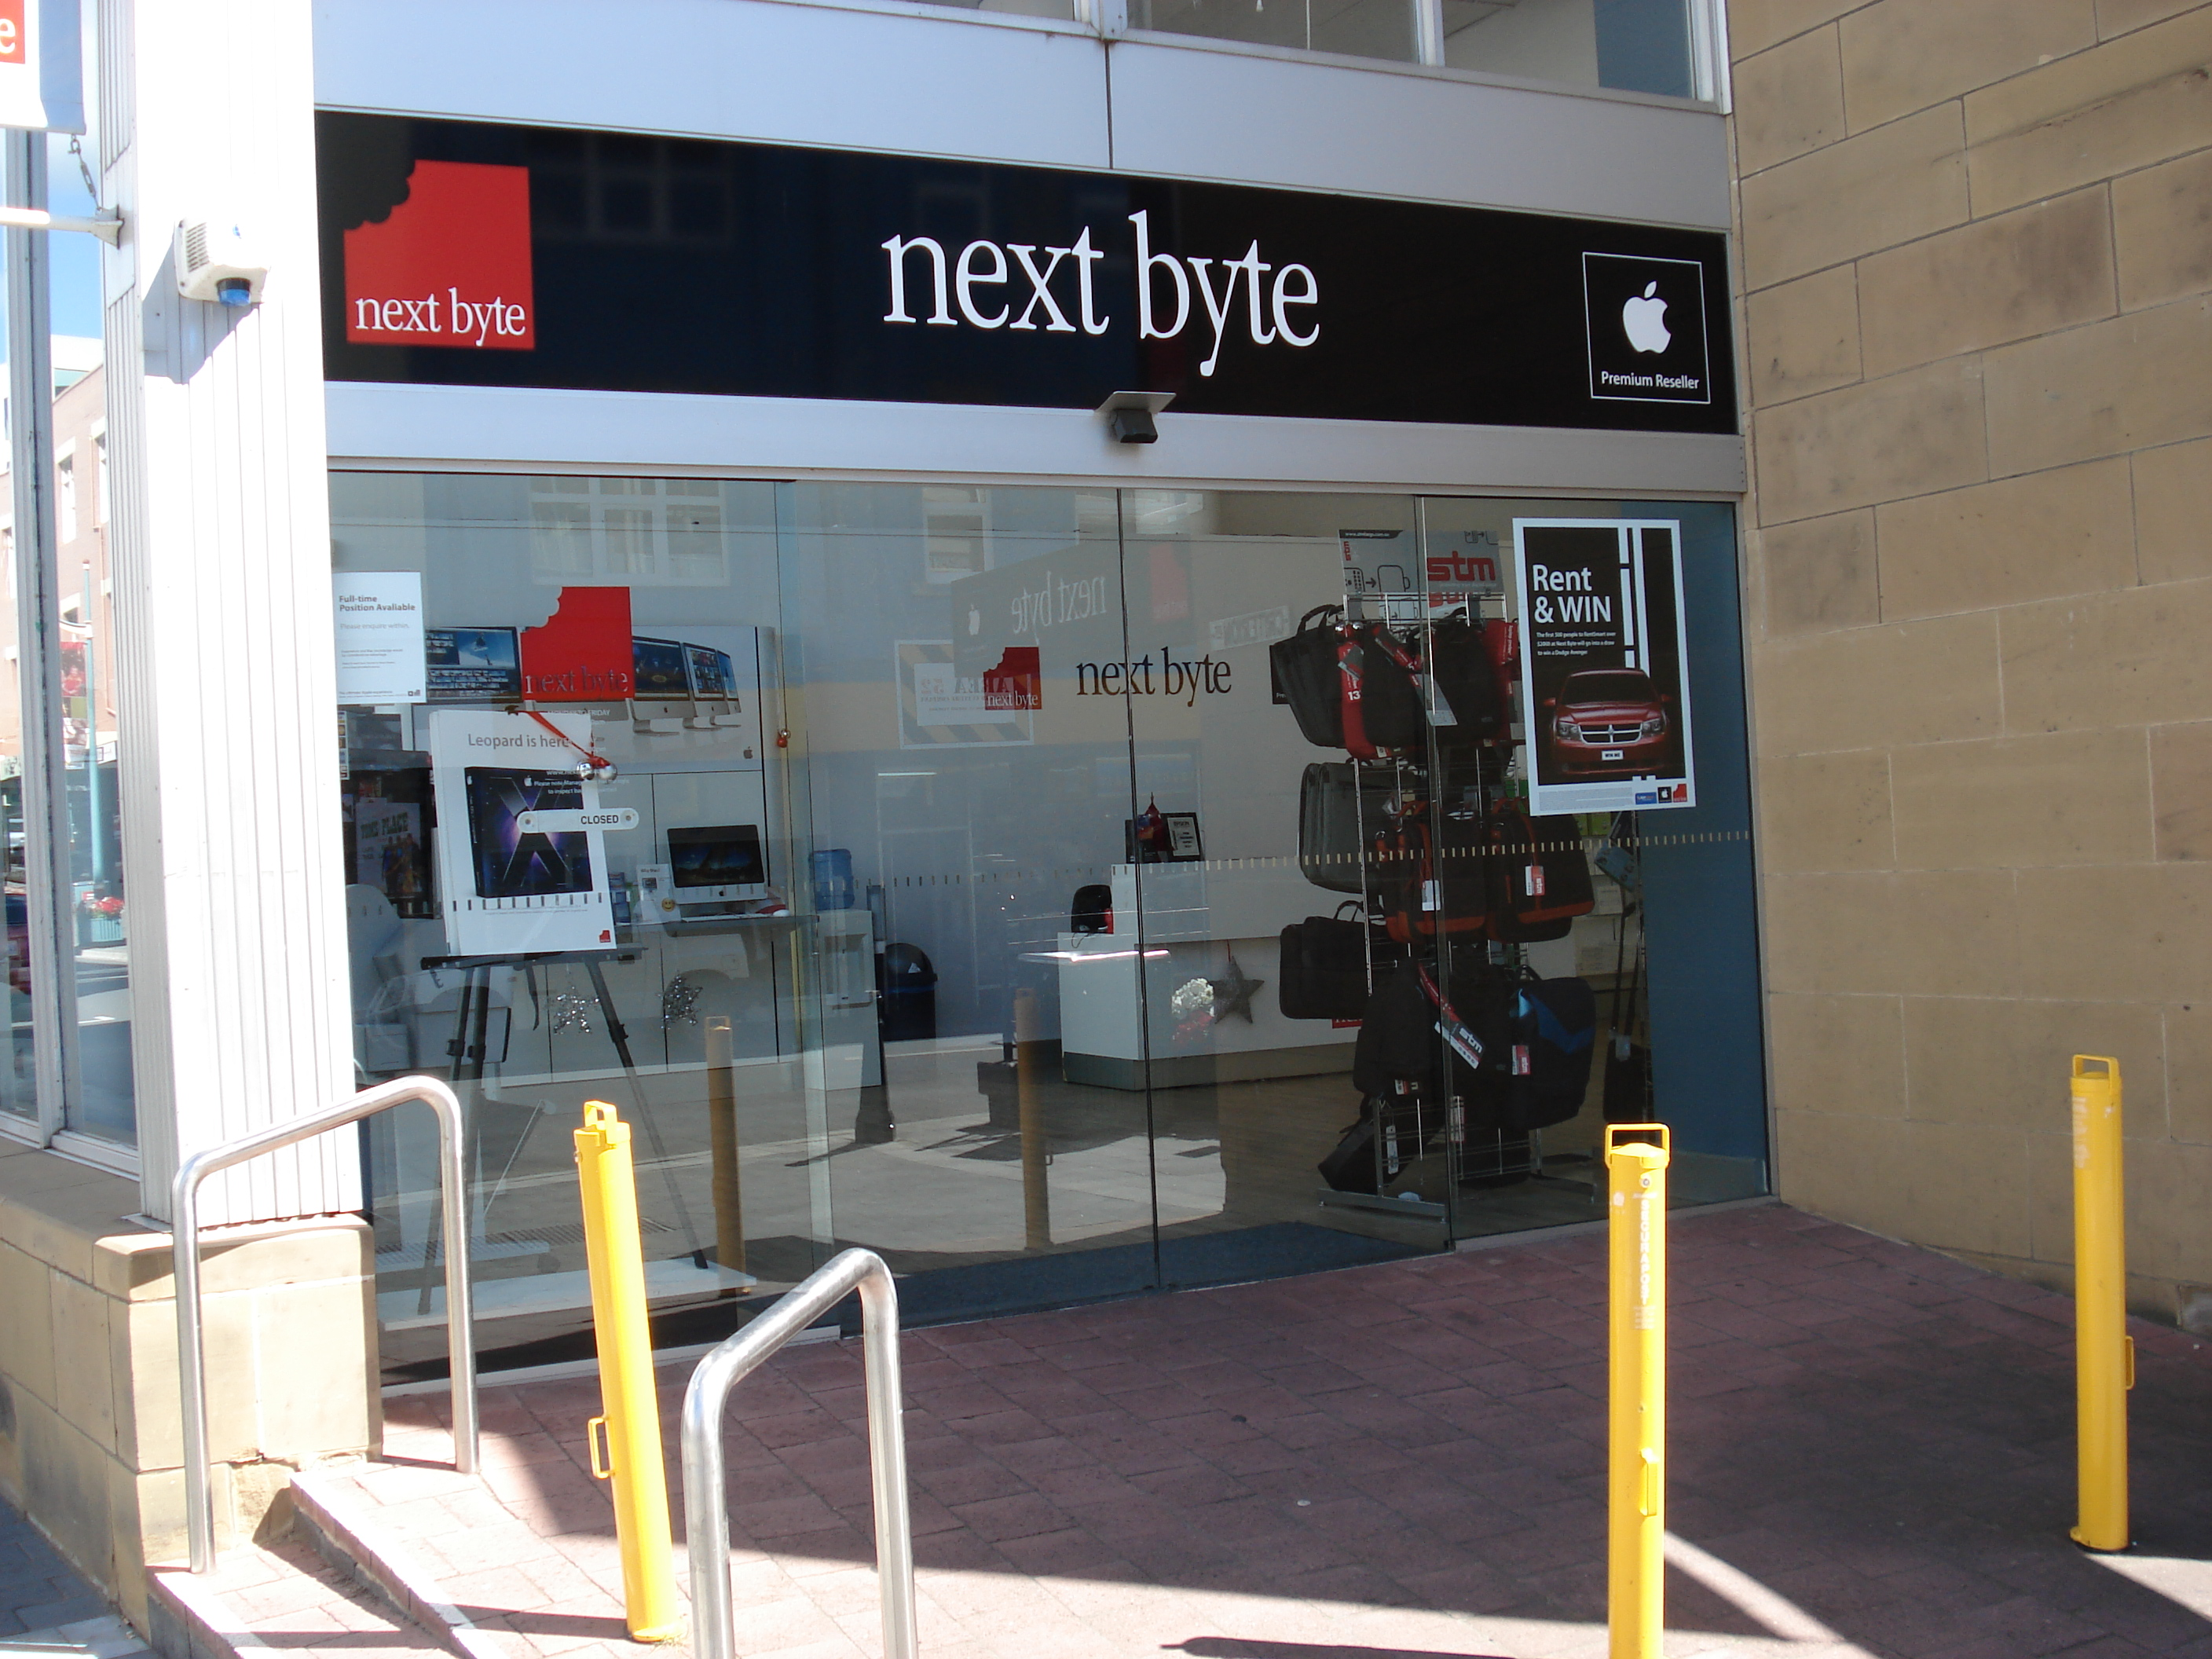 Sliding glass door entrance to Next Byte Hobart, circa 2008